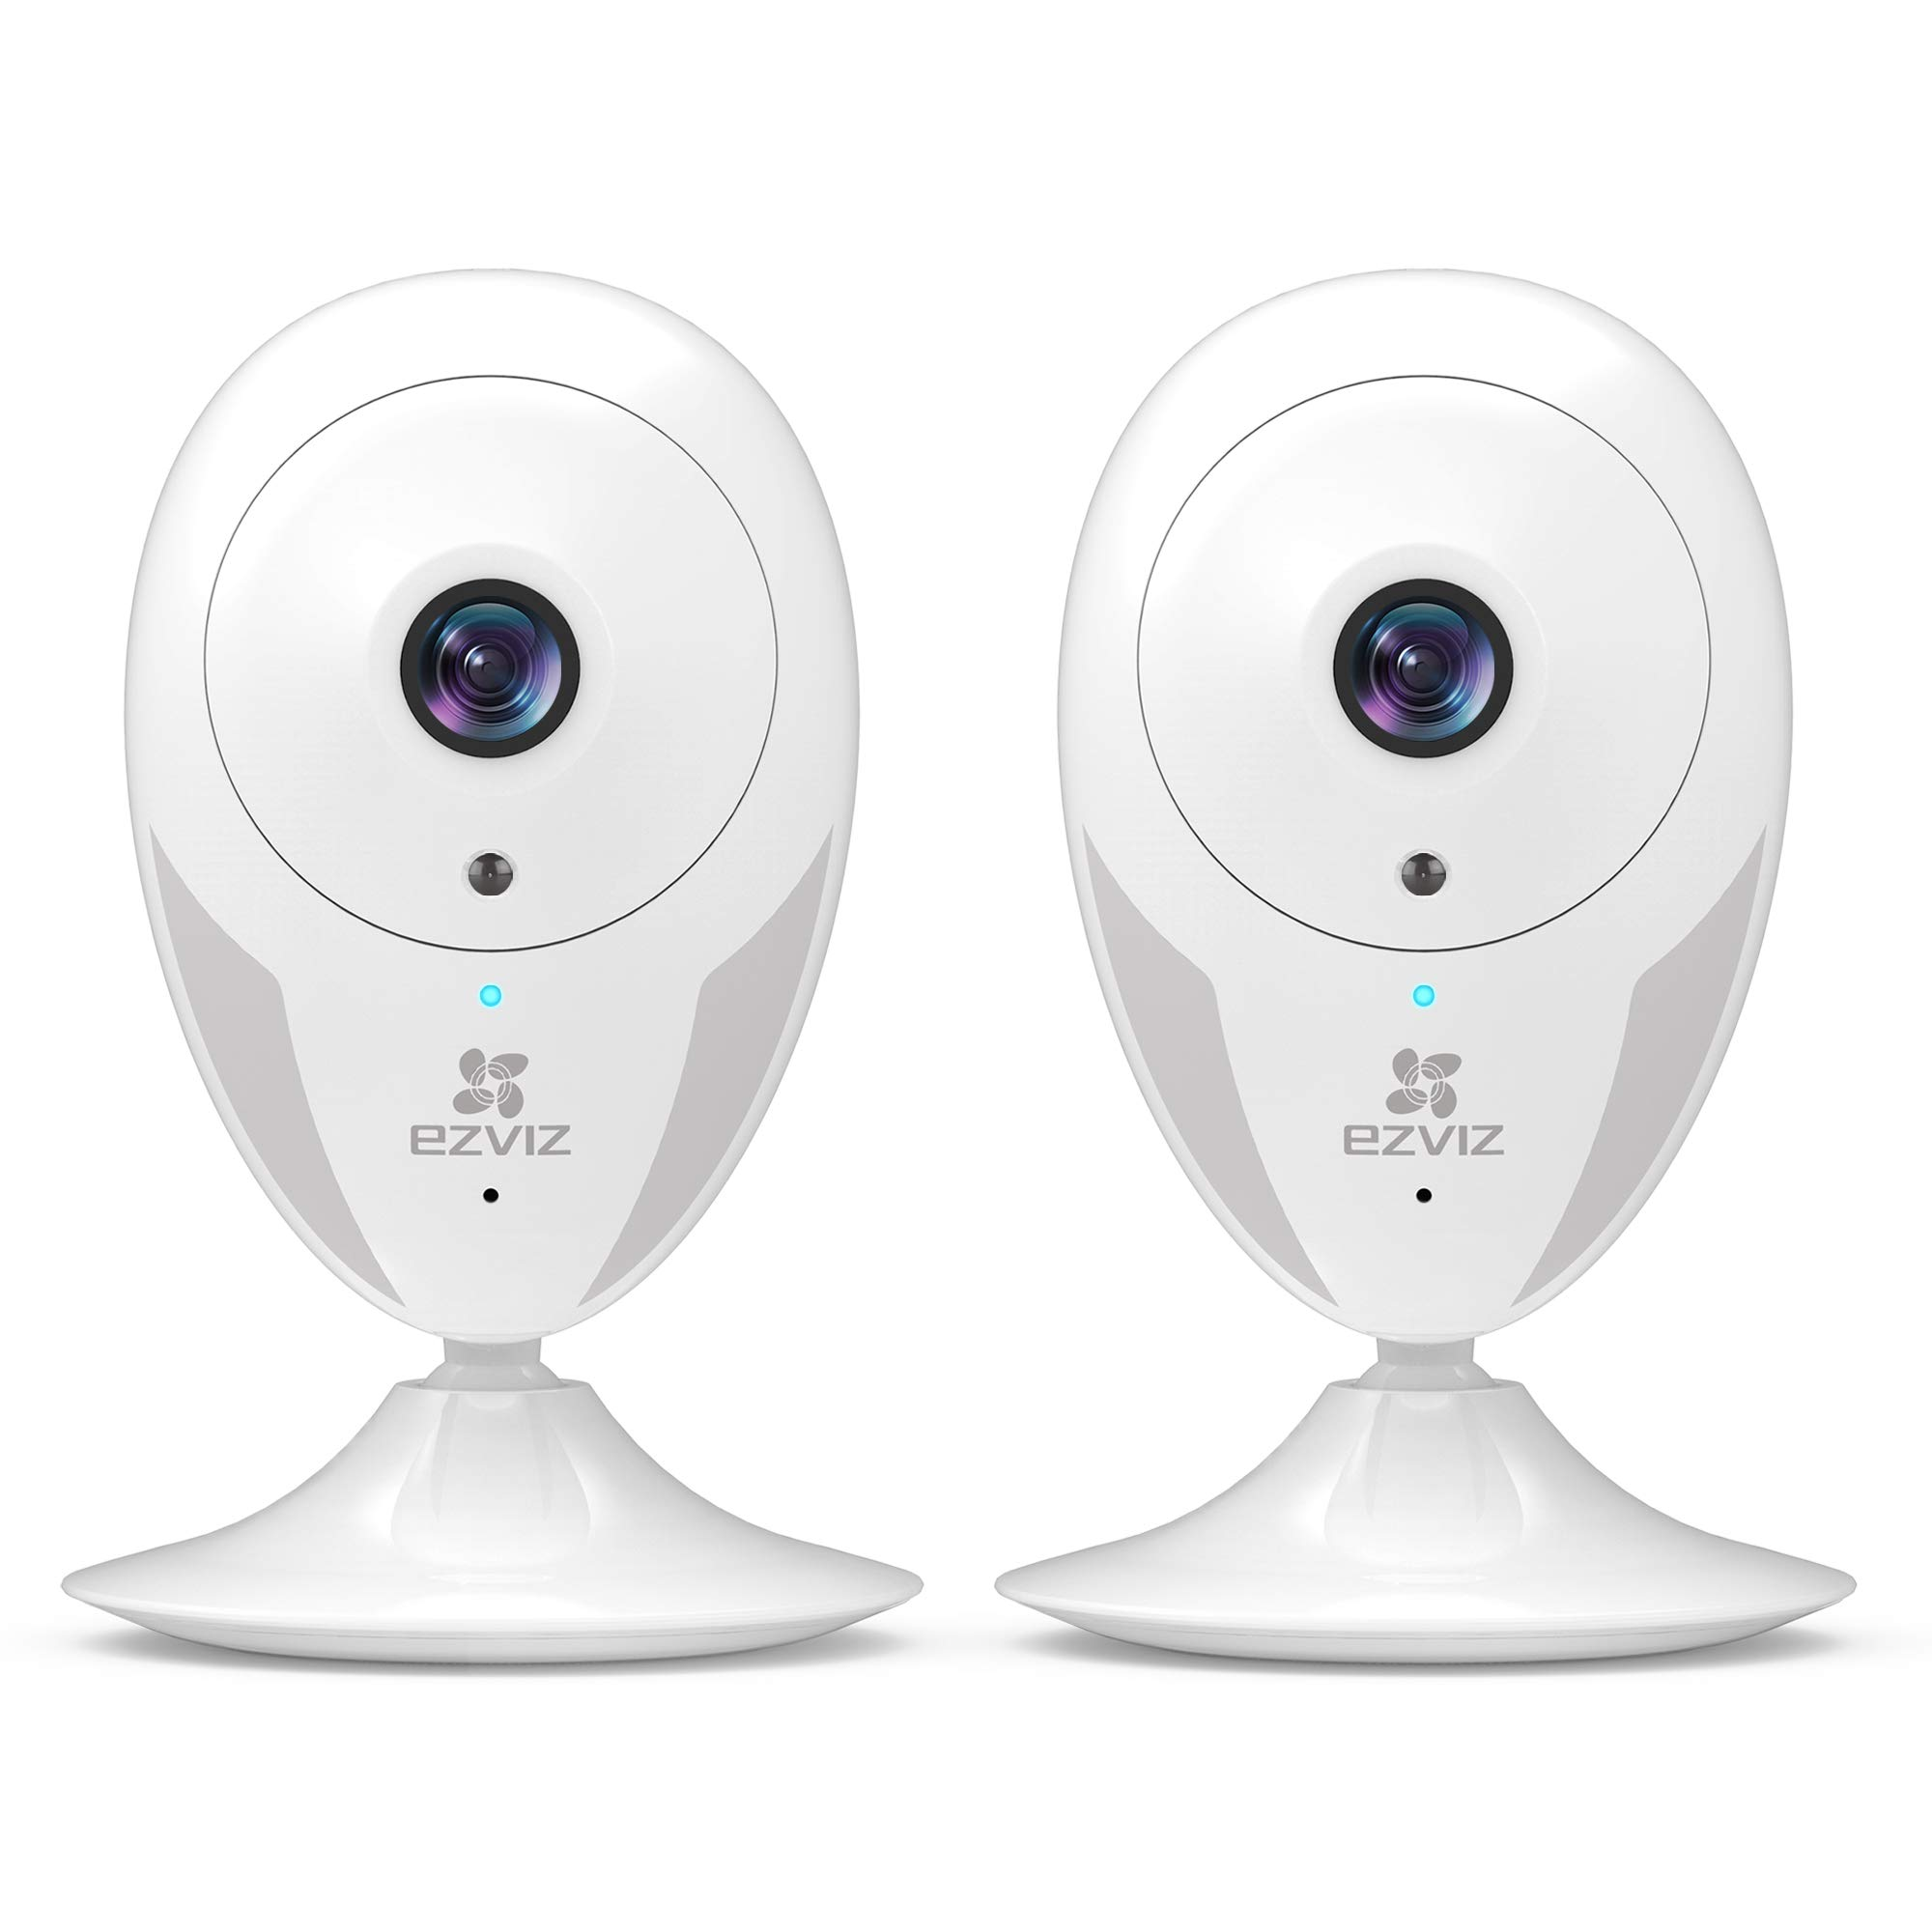 EZVIZ Indoor Wi-Fi Security Camera IPC Works with Alexa Google Home IFTTT WiFi(2.4G Only) 25ft Night Vision Motion Detection Alert Baby/Pet Monitoring 111° Wide Angle Two-Way Audio White CTQ2C 2 Pack